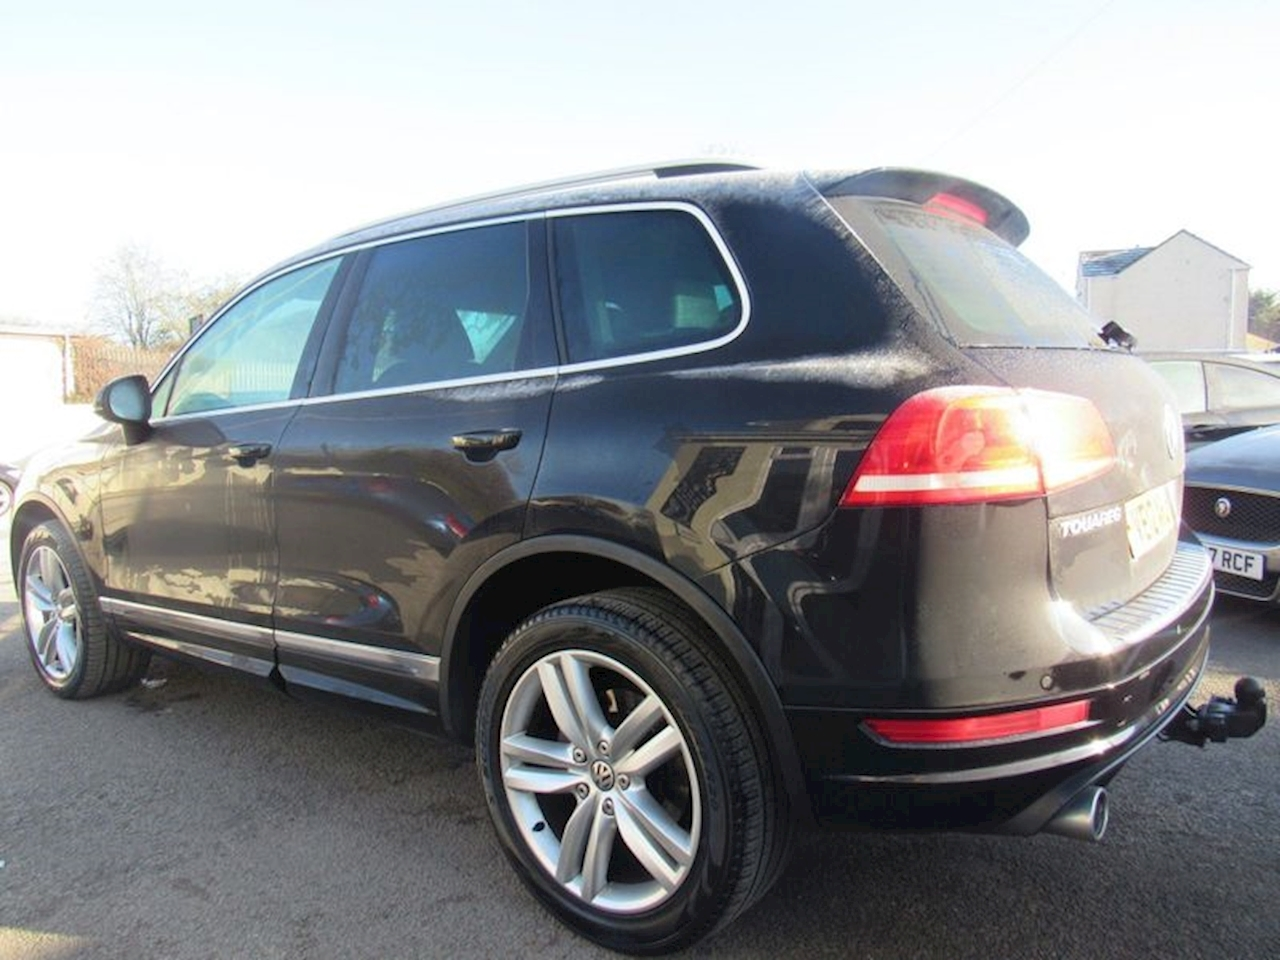 Volkswagen Touareg V6 Altitude Tdi Bluemotion Technology Estate 3.0 Automatic Diesel